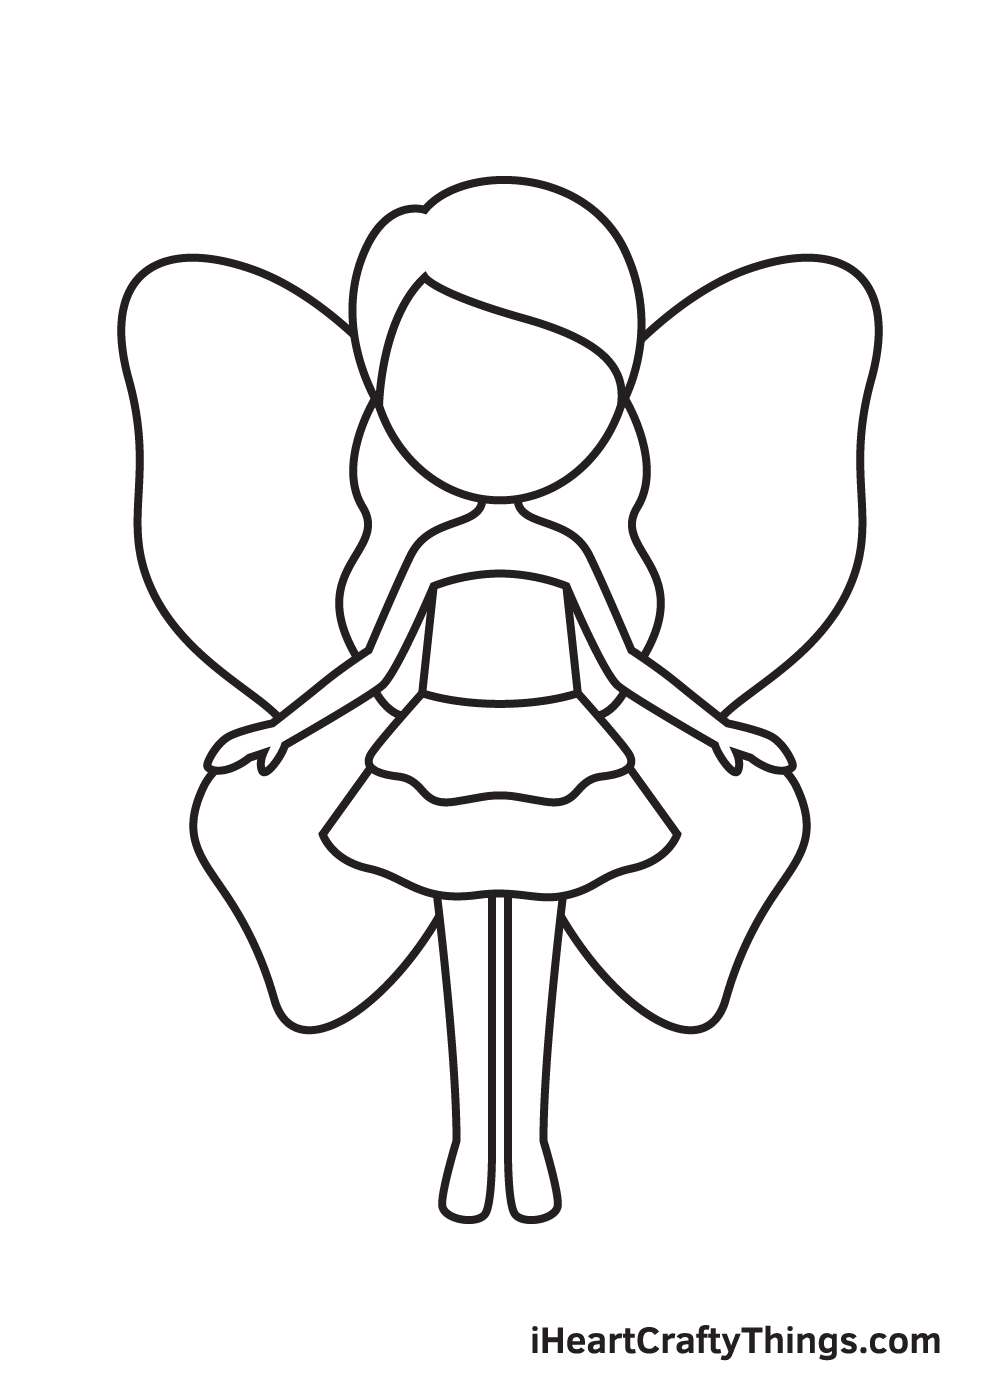 Fairy Drawing – Step 7